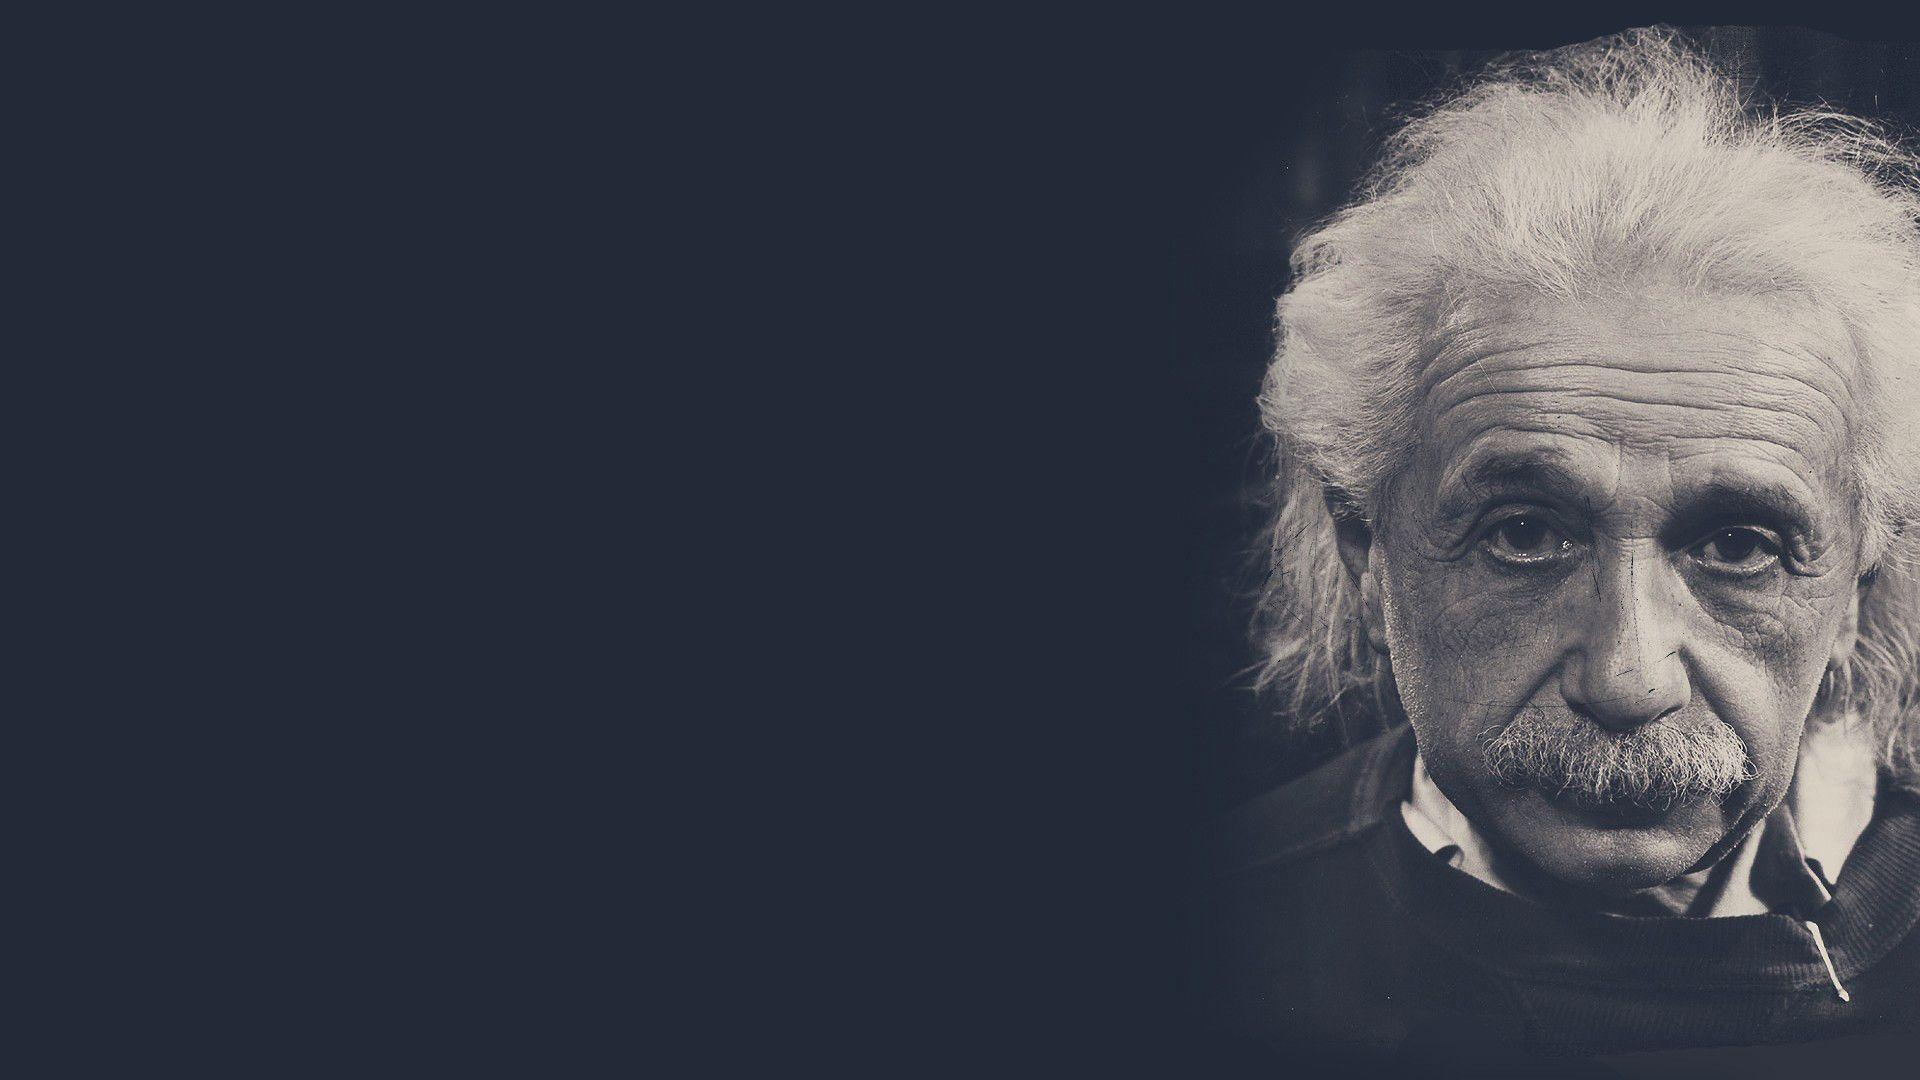 Albert Einstein Wallpaper Male Celebrity Wallpapers 1366x768PX